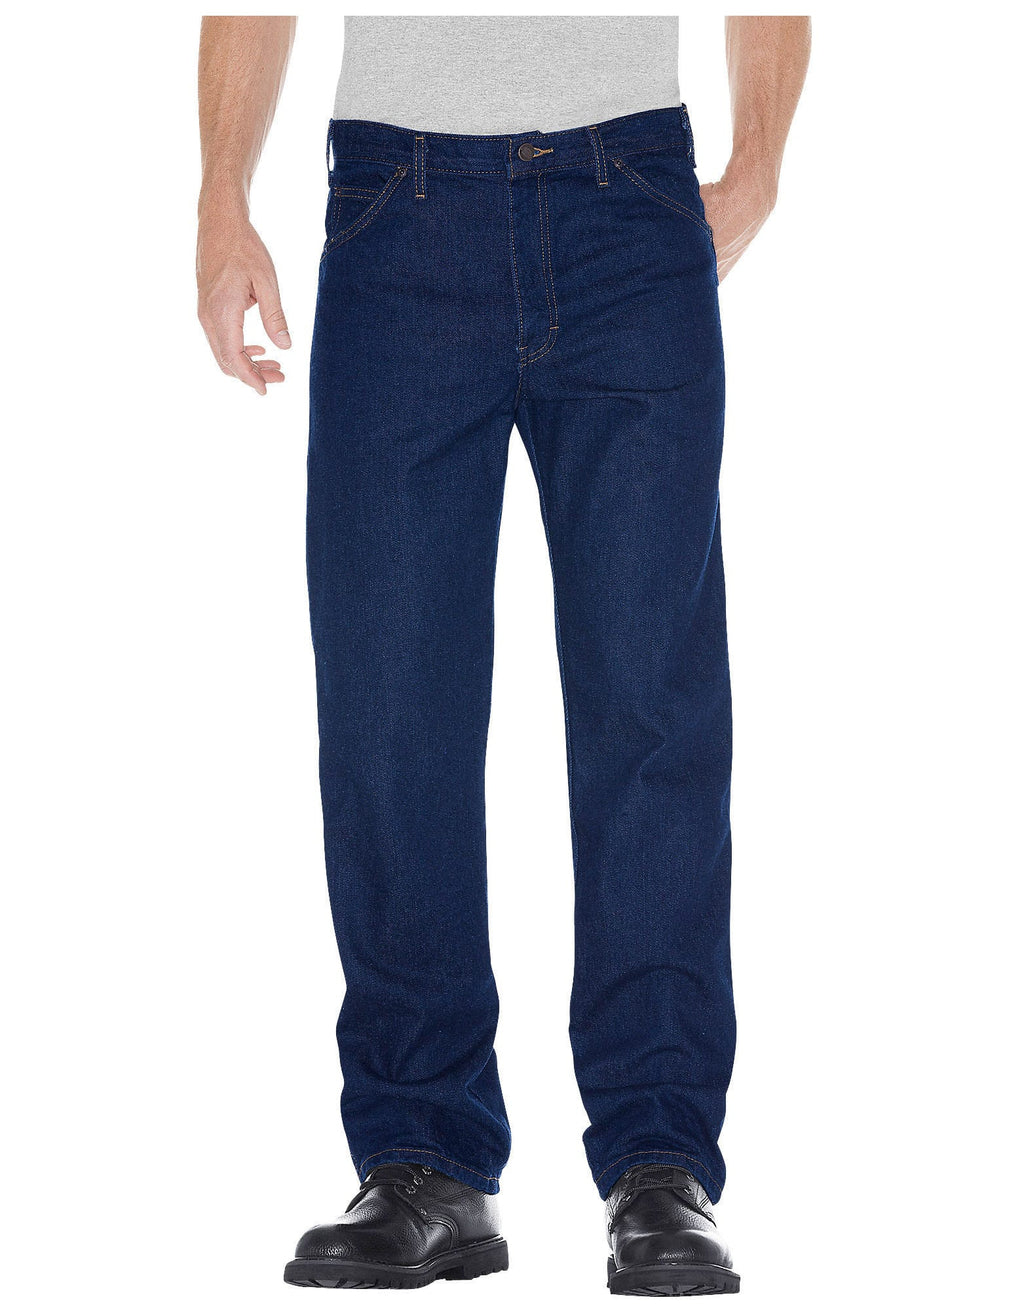 Dickies Mens Regular Fit Prewashed Jeans